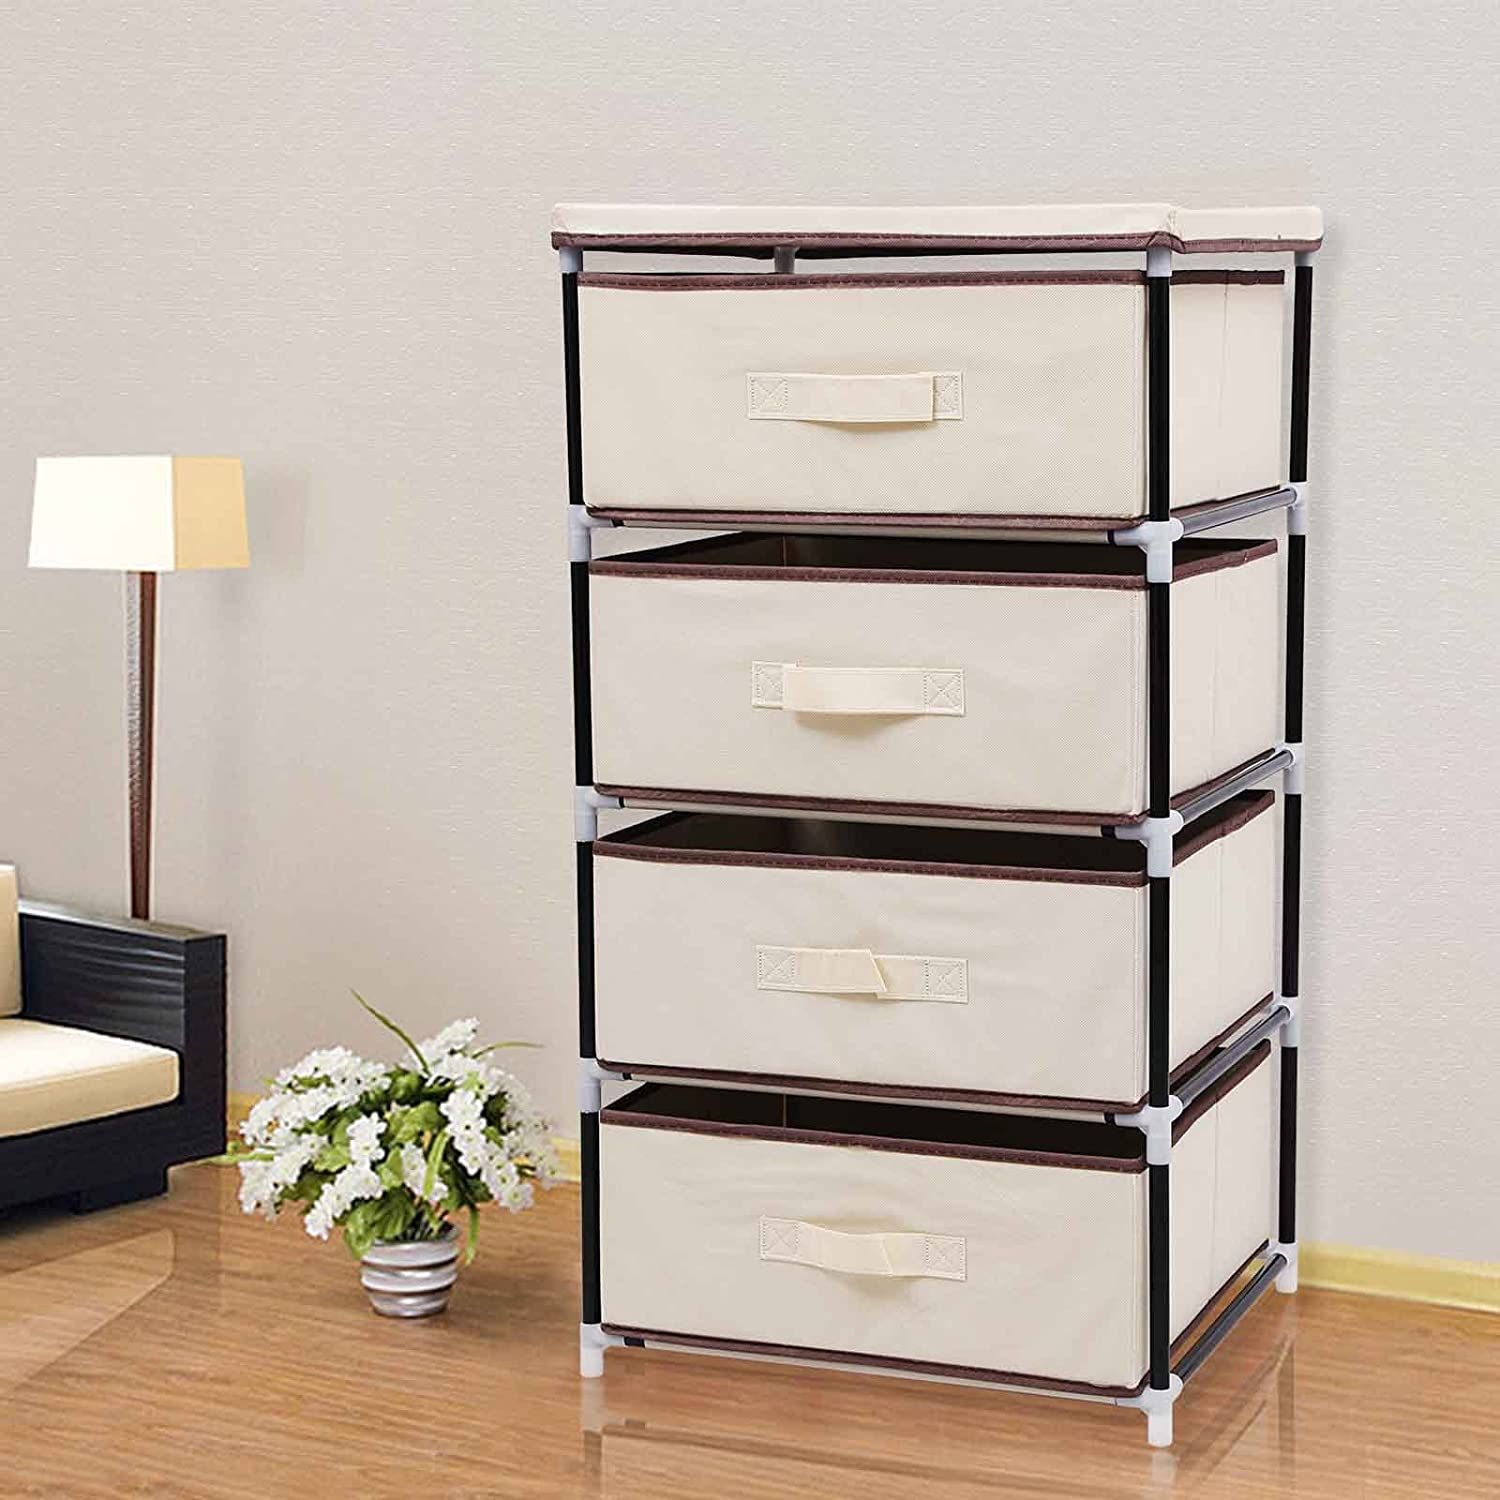 style ideas organizers new drawer with decorating tower in drawers architecture shelves and glamorous closet organization